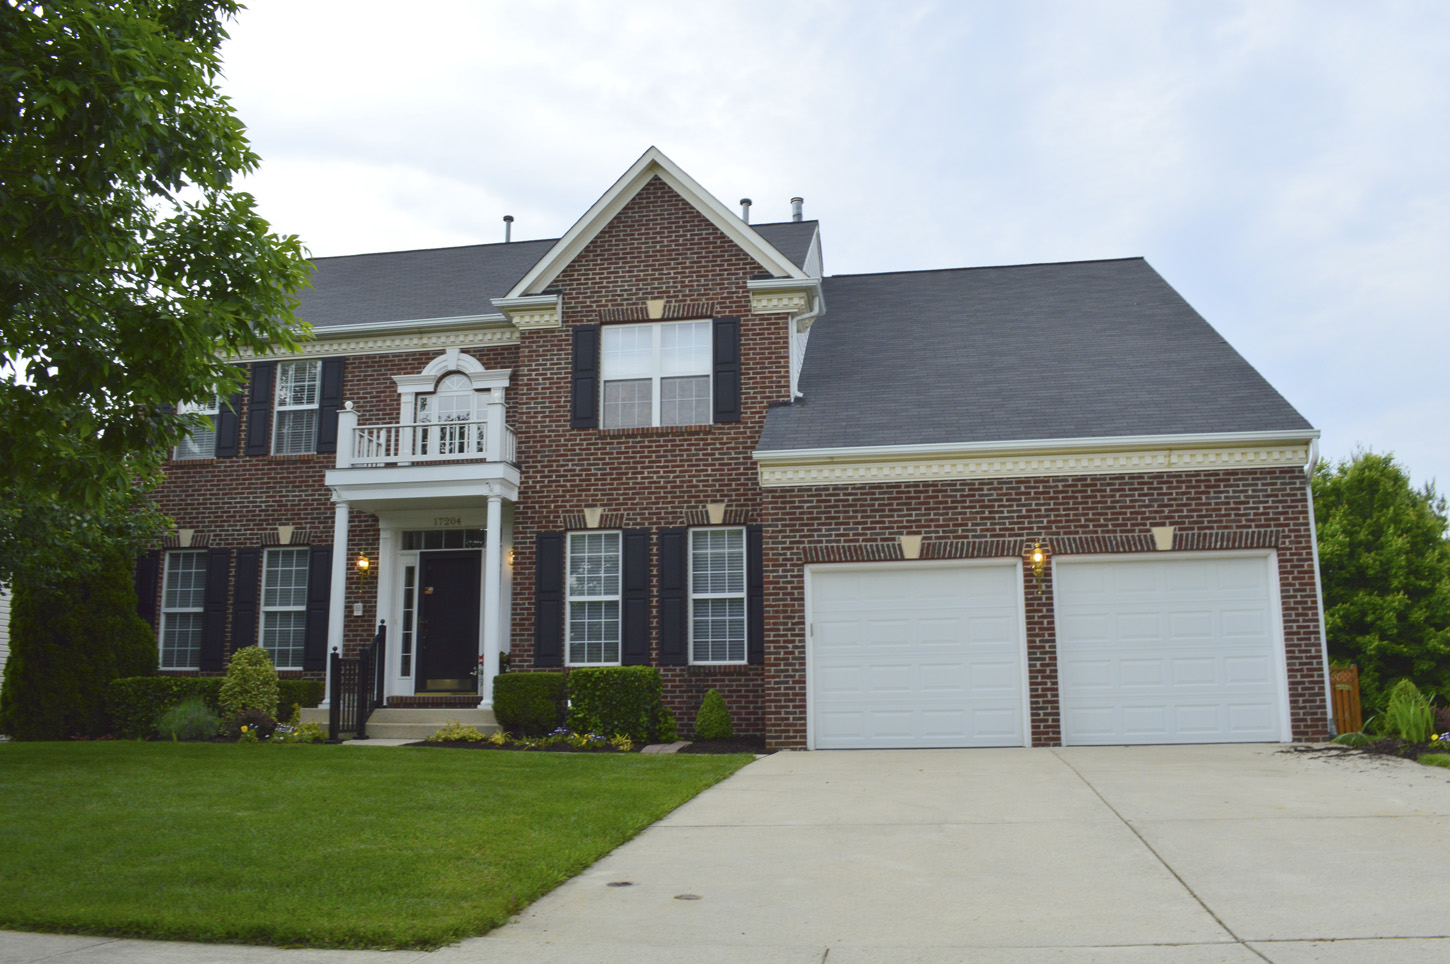 Floor Plan Home Homevisit Virtual Tour 17204 Birch Leaf Ter Bowie Md 20716